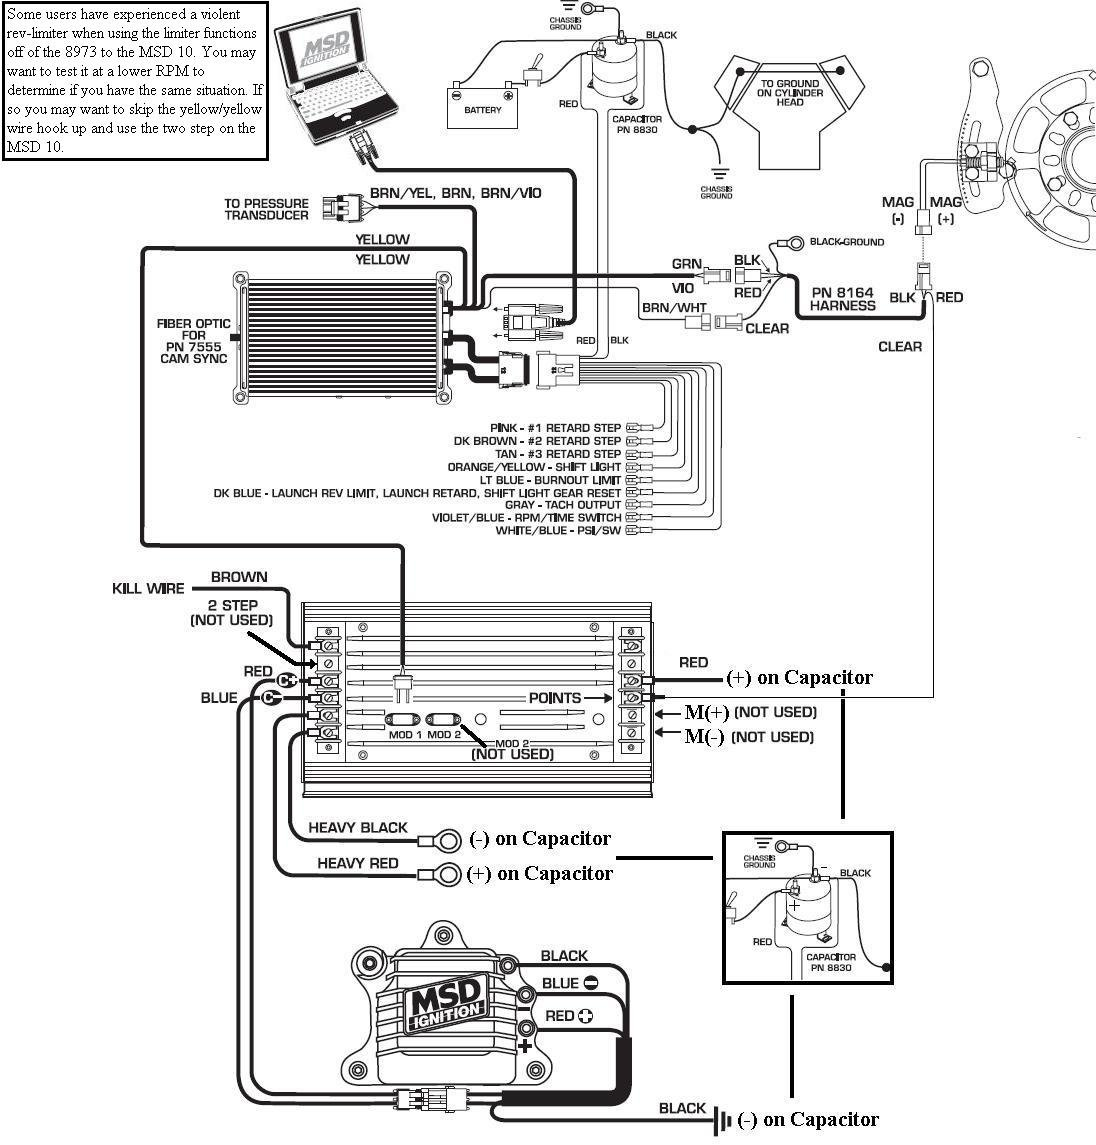 blog diagrams and drawings 8973 8973 to msd 10 8973 to msd 10 jpg width 1120 msd 8982 hei wiring diagram msd printable wiring diagram 1120 x 1170